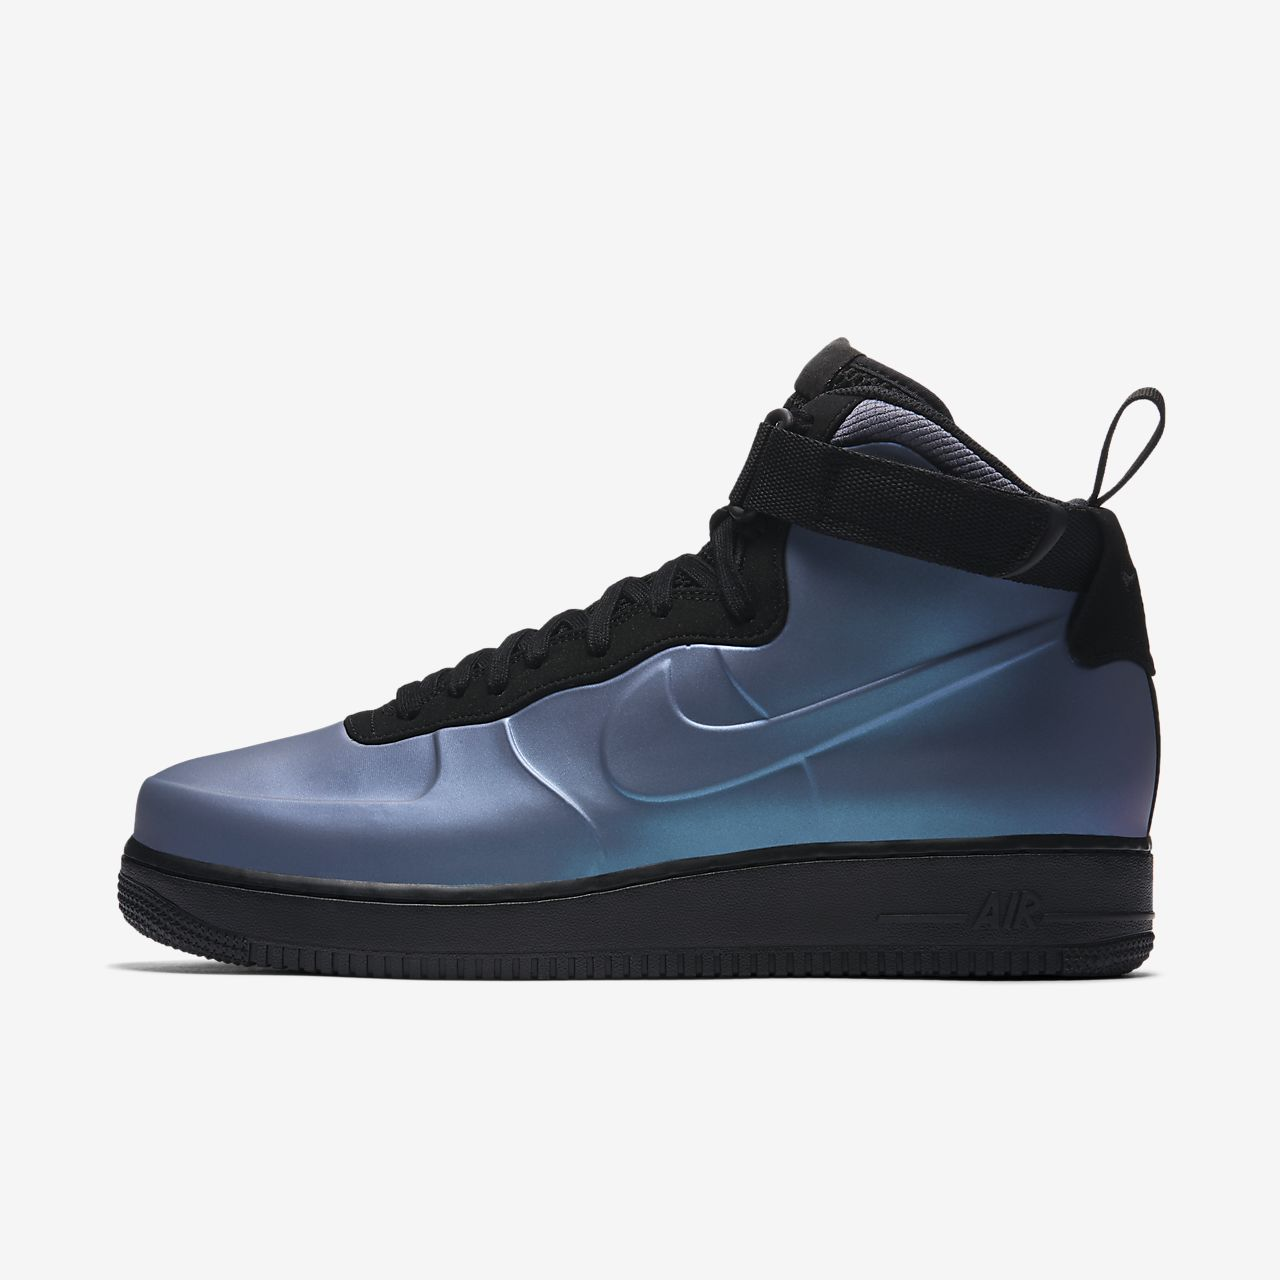 nike men's air force 1 black nz